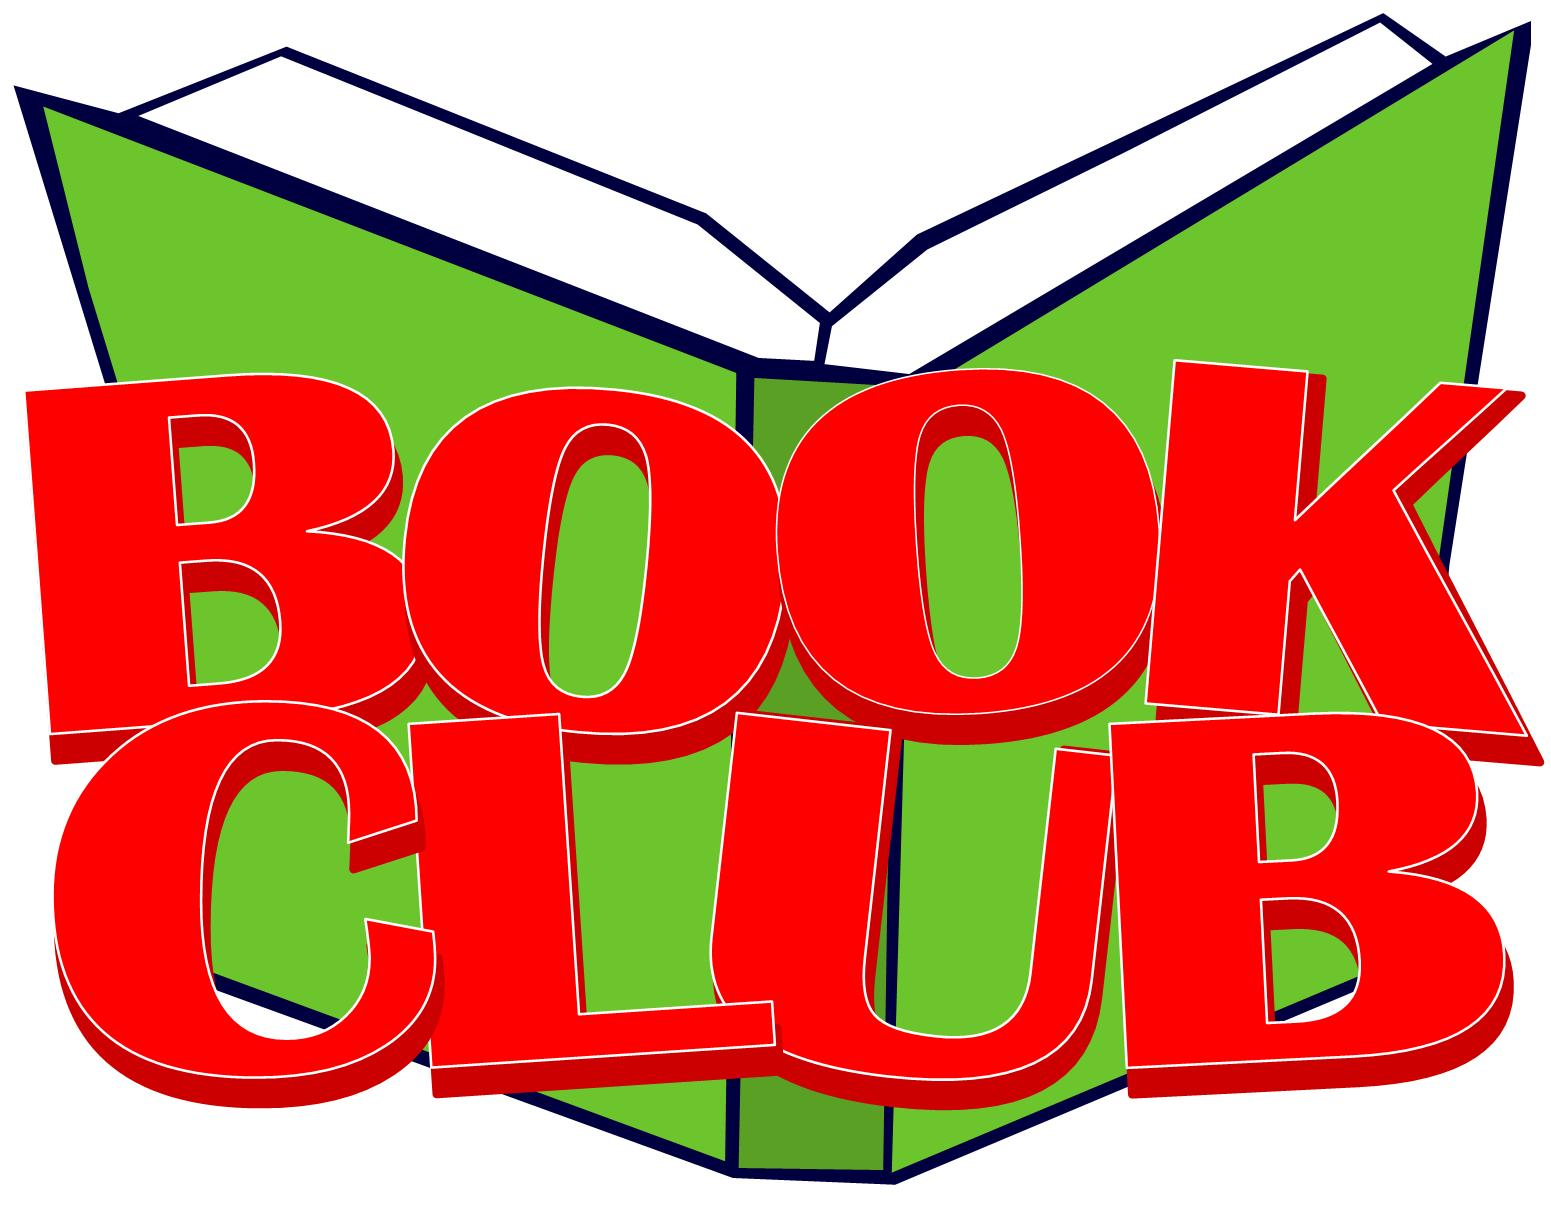 ... Book Club Clip Art ...